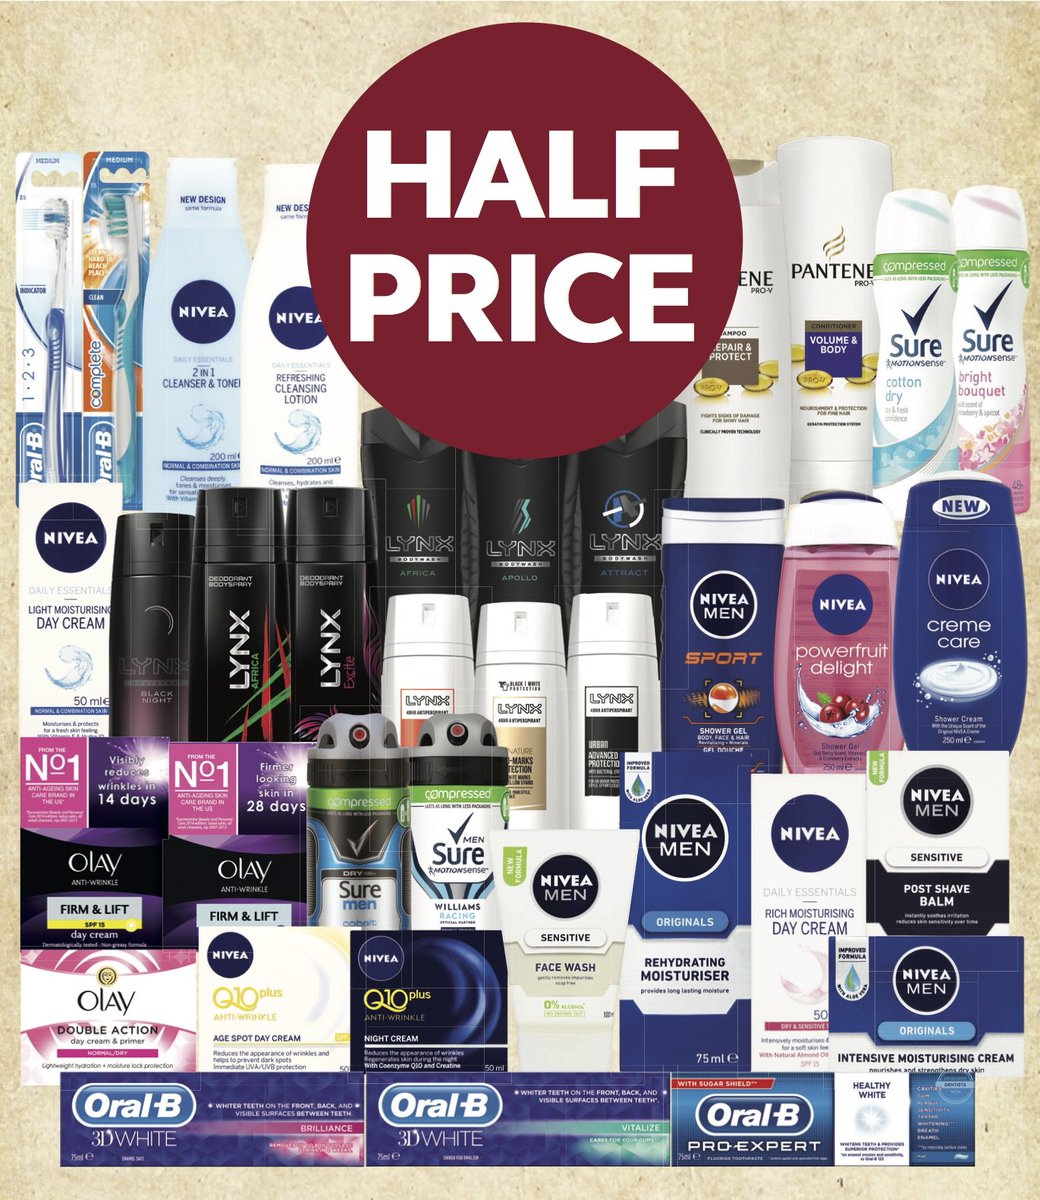 A must for the weekly shop with great value on personal care in store... selected products half price! https://t.co/3J7t2qNuv3